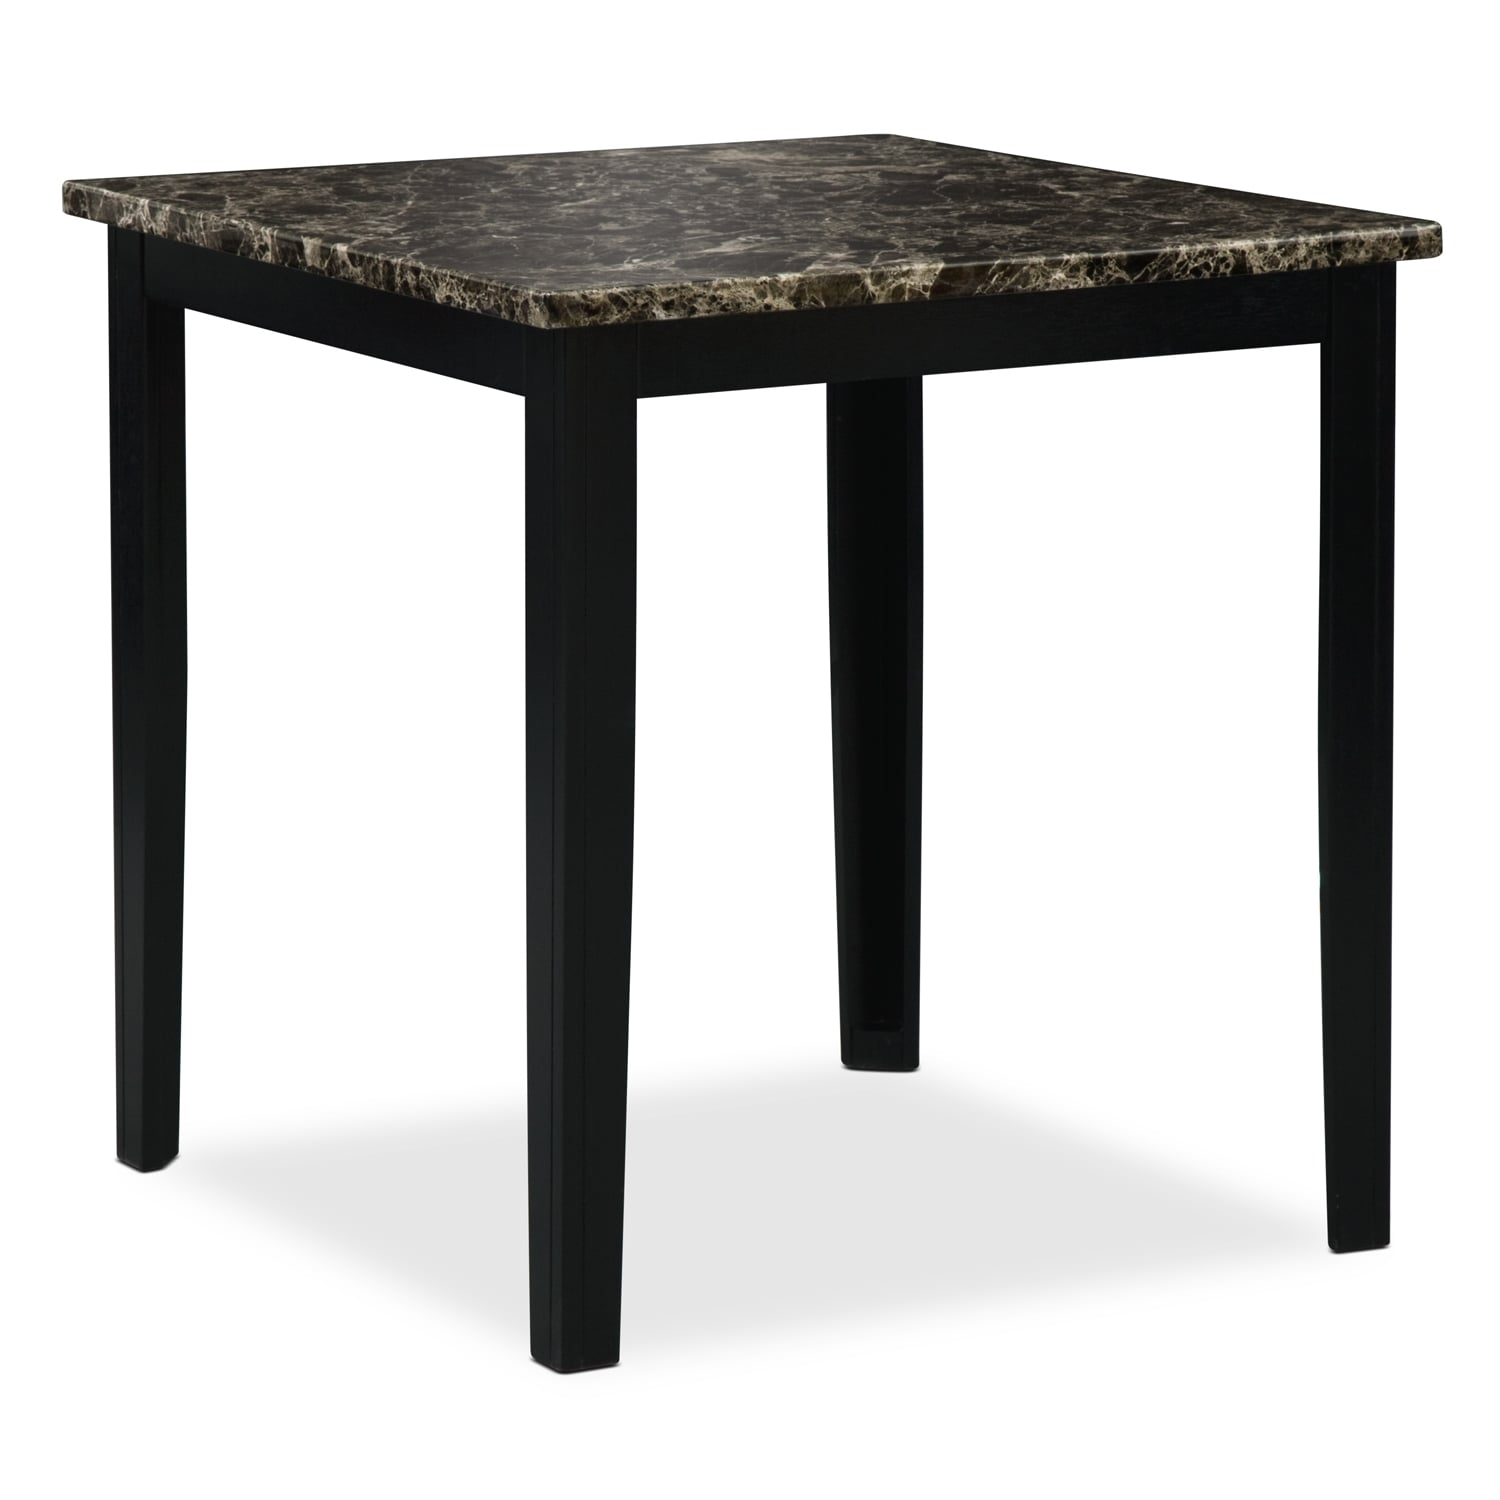 Dining Room Furniture - Shadow Counter-Height Dining Table - Black